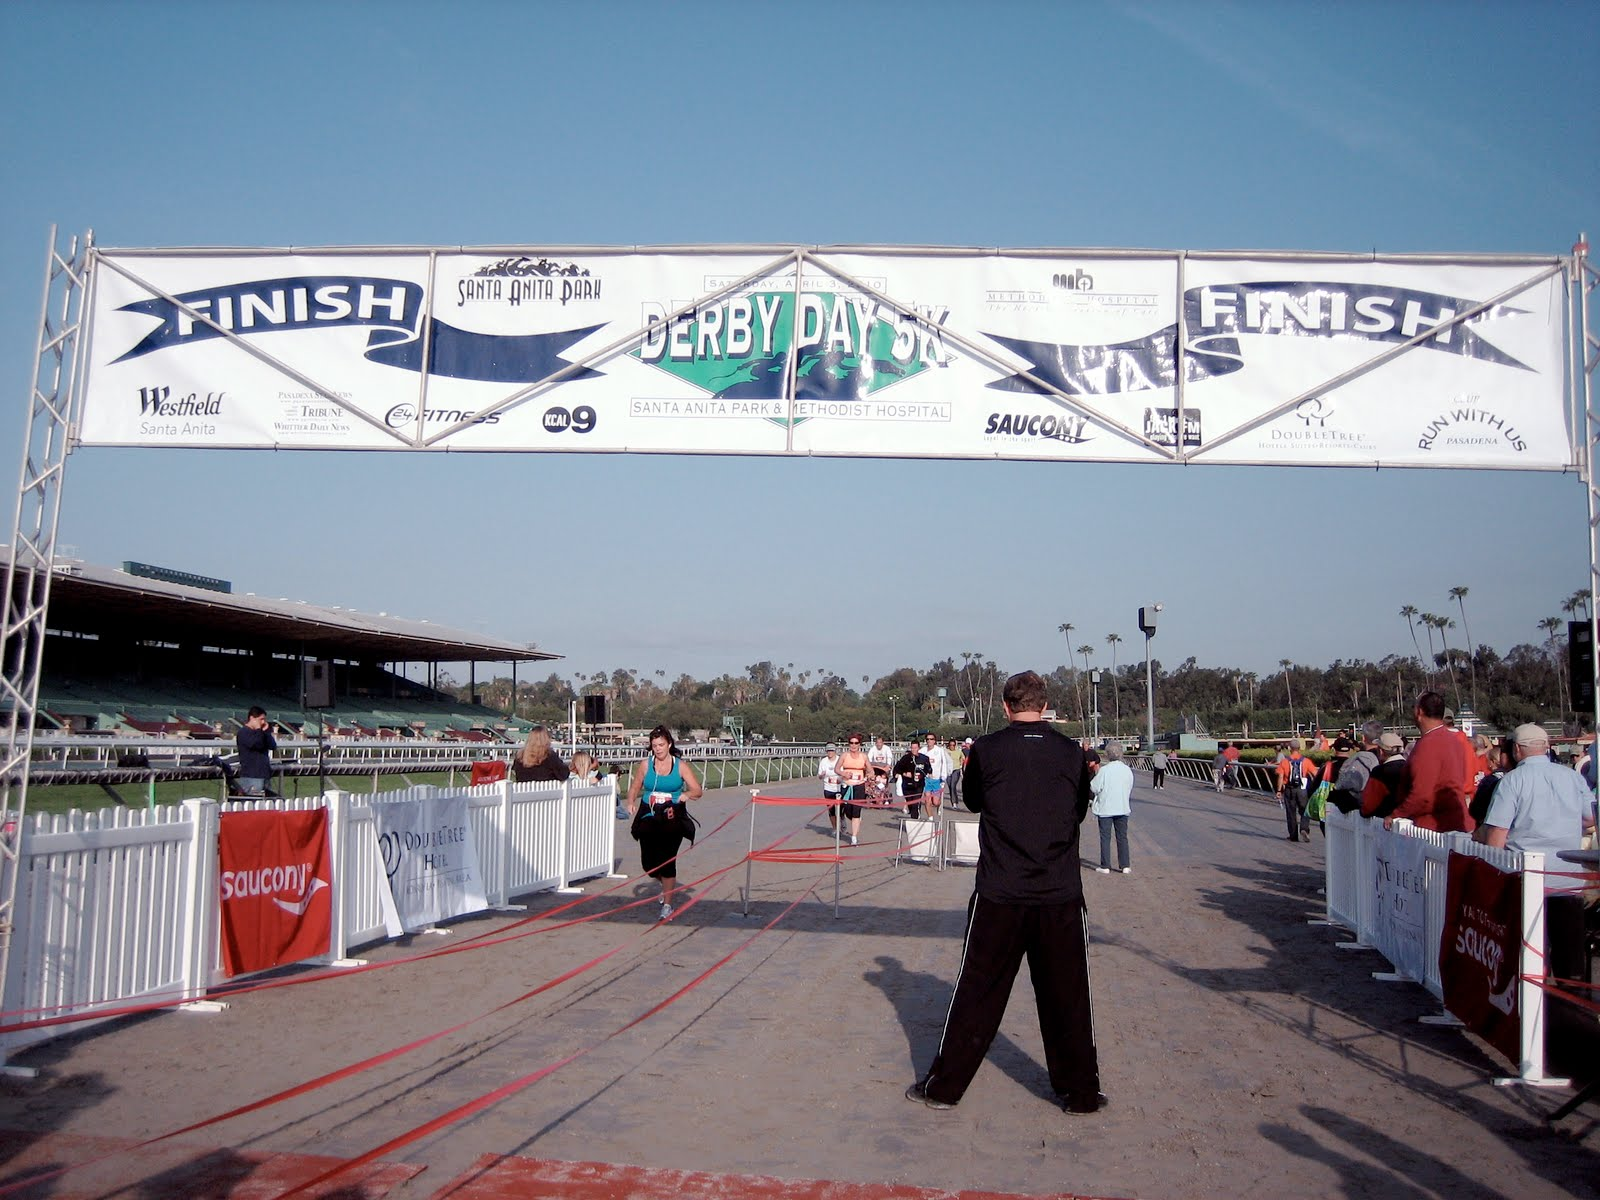 Mary Forney S Blog Derby Day L A Style Starts With A 5k Race